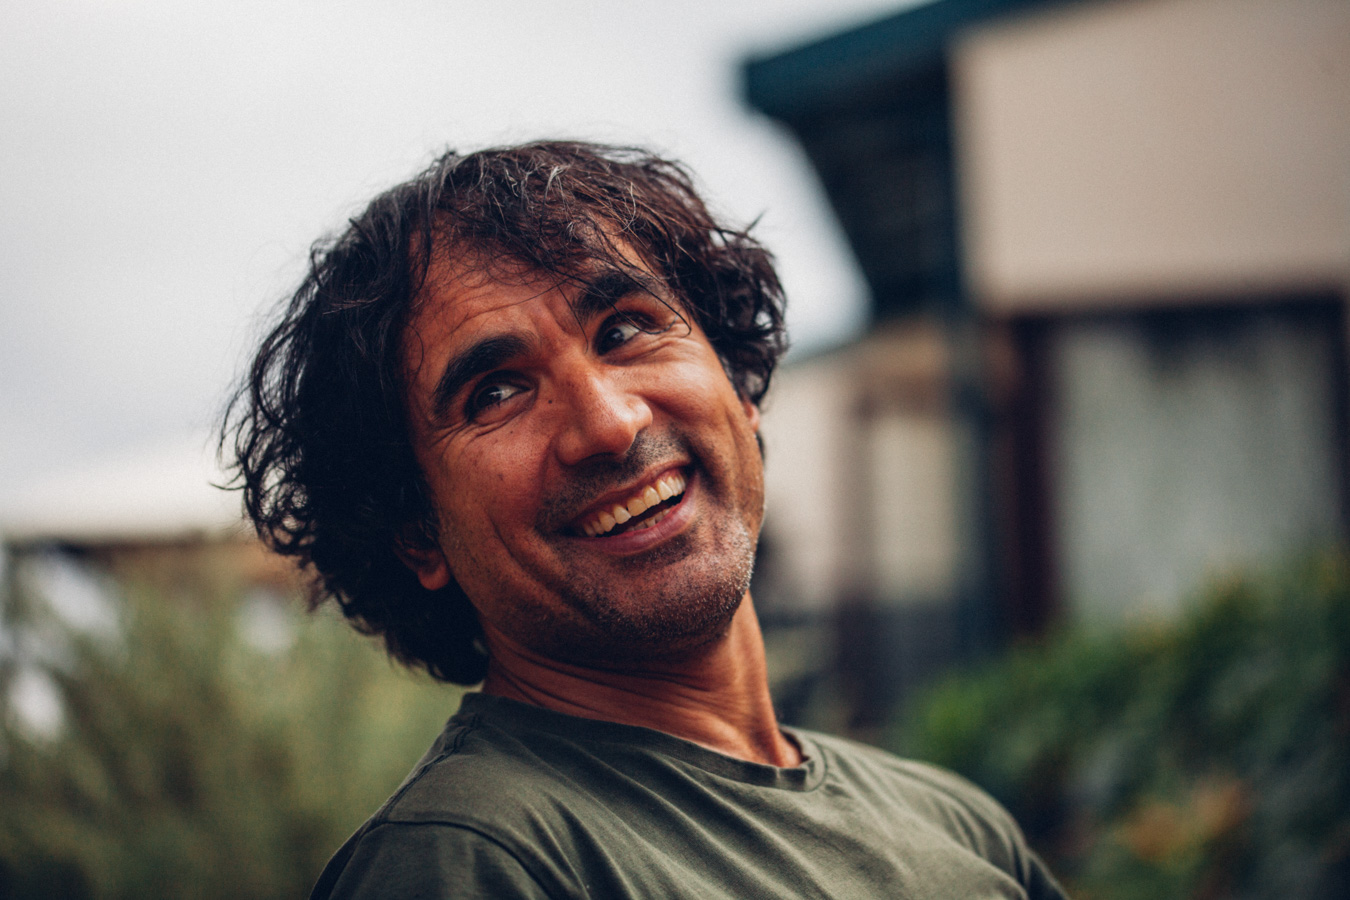 Arad Niksefat, the subject of the documentary Persia's Pantry, filmed and produced by Daniel Njegich.